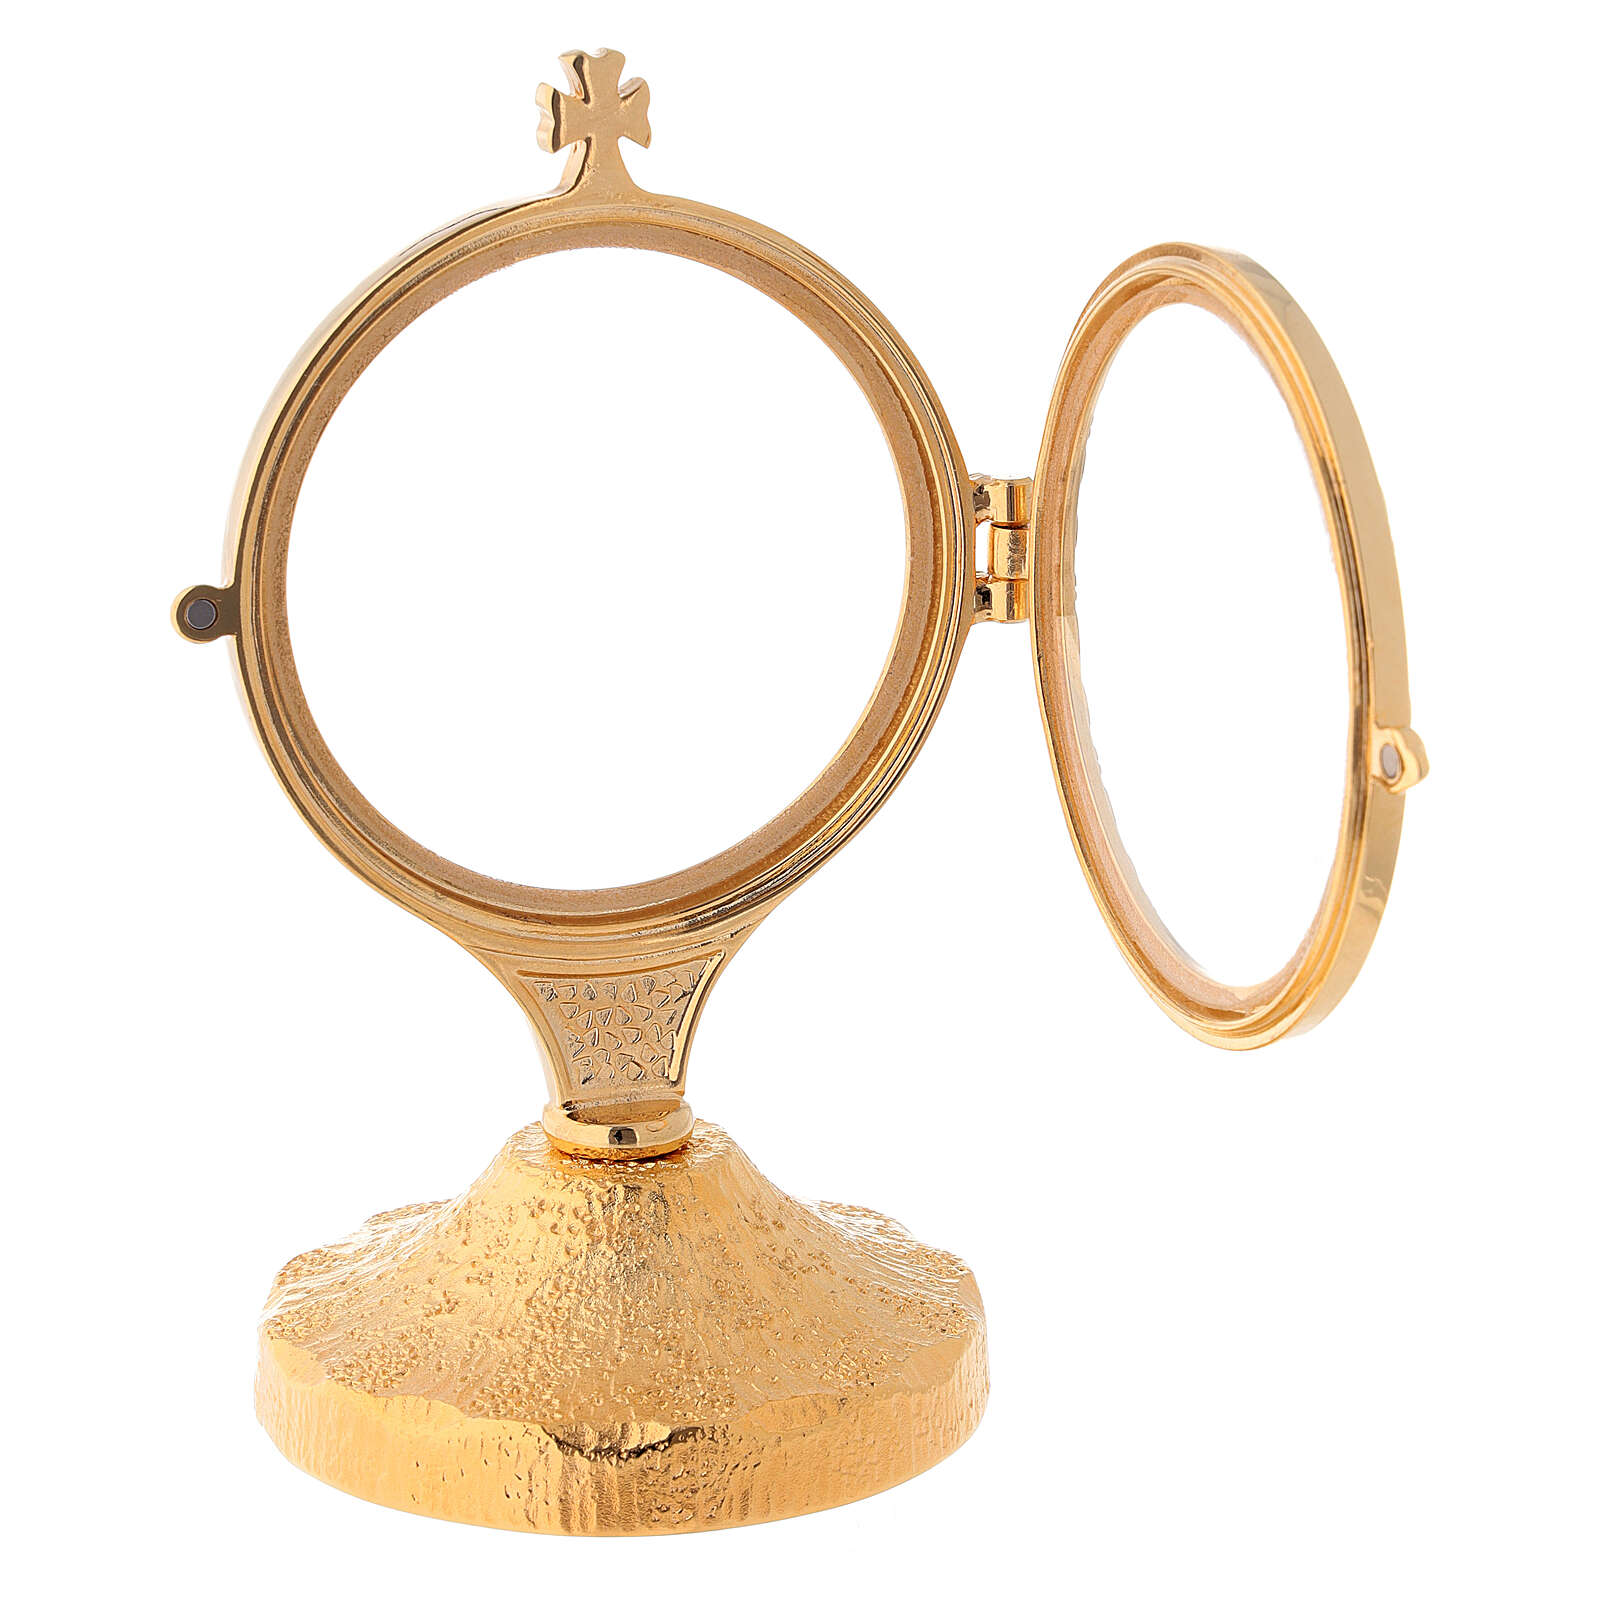 Monstrance with gold plated coarse base and short stem 6 in 4